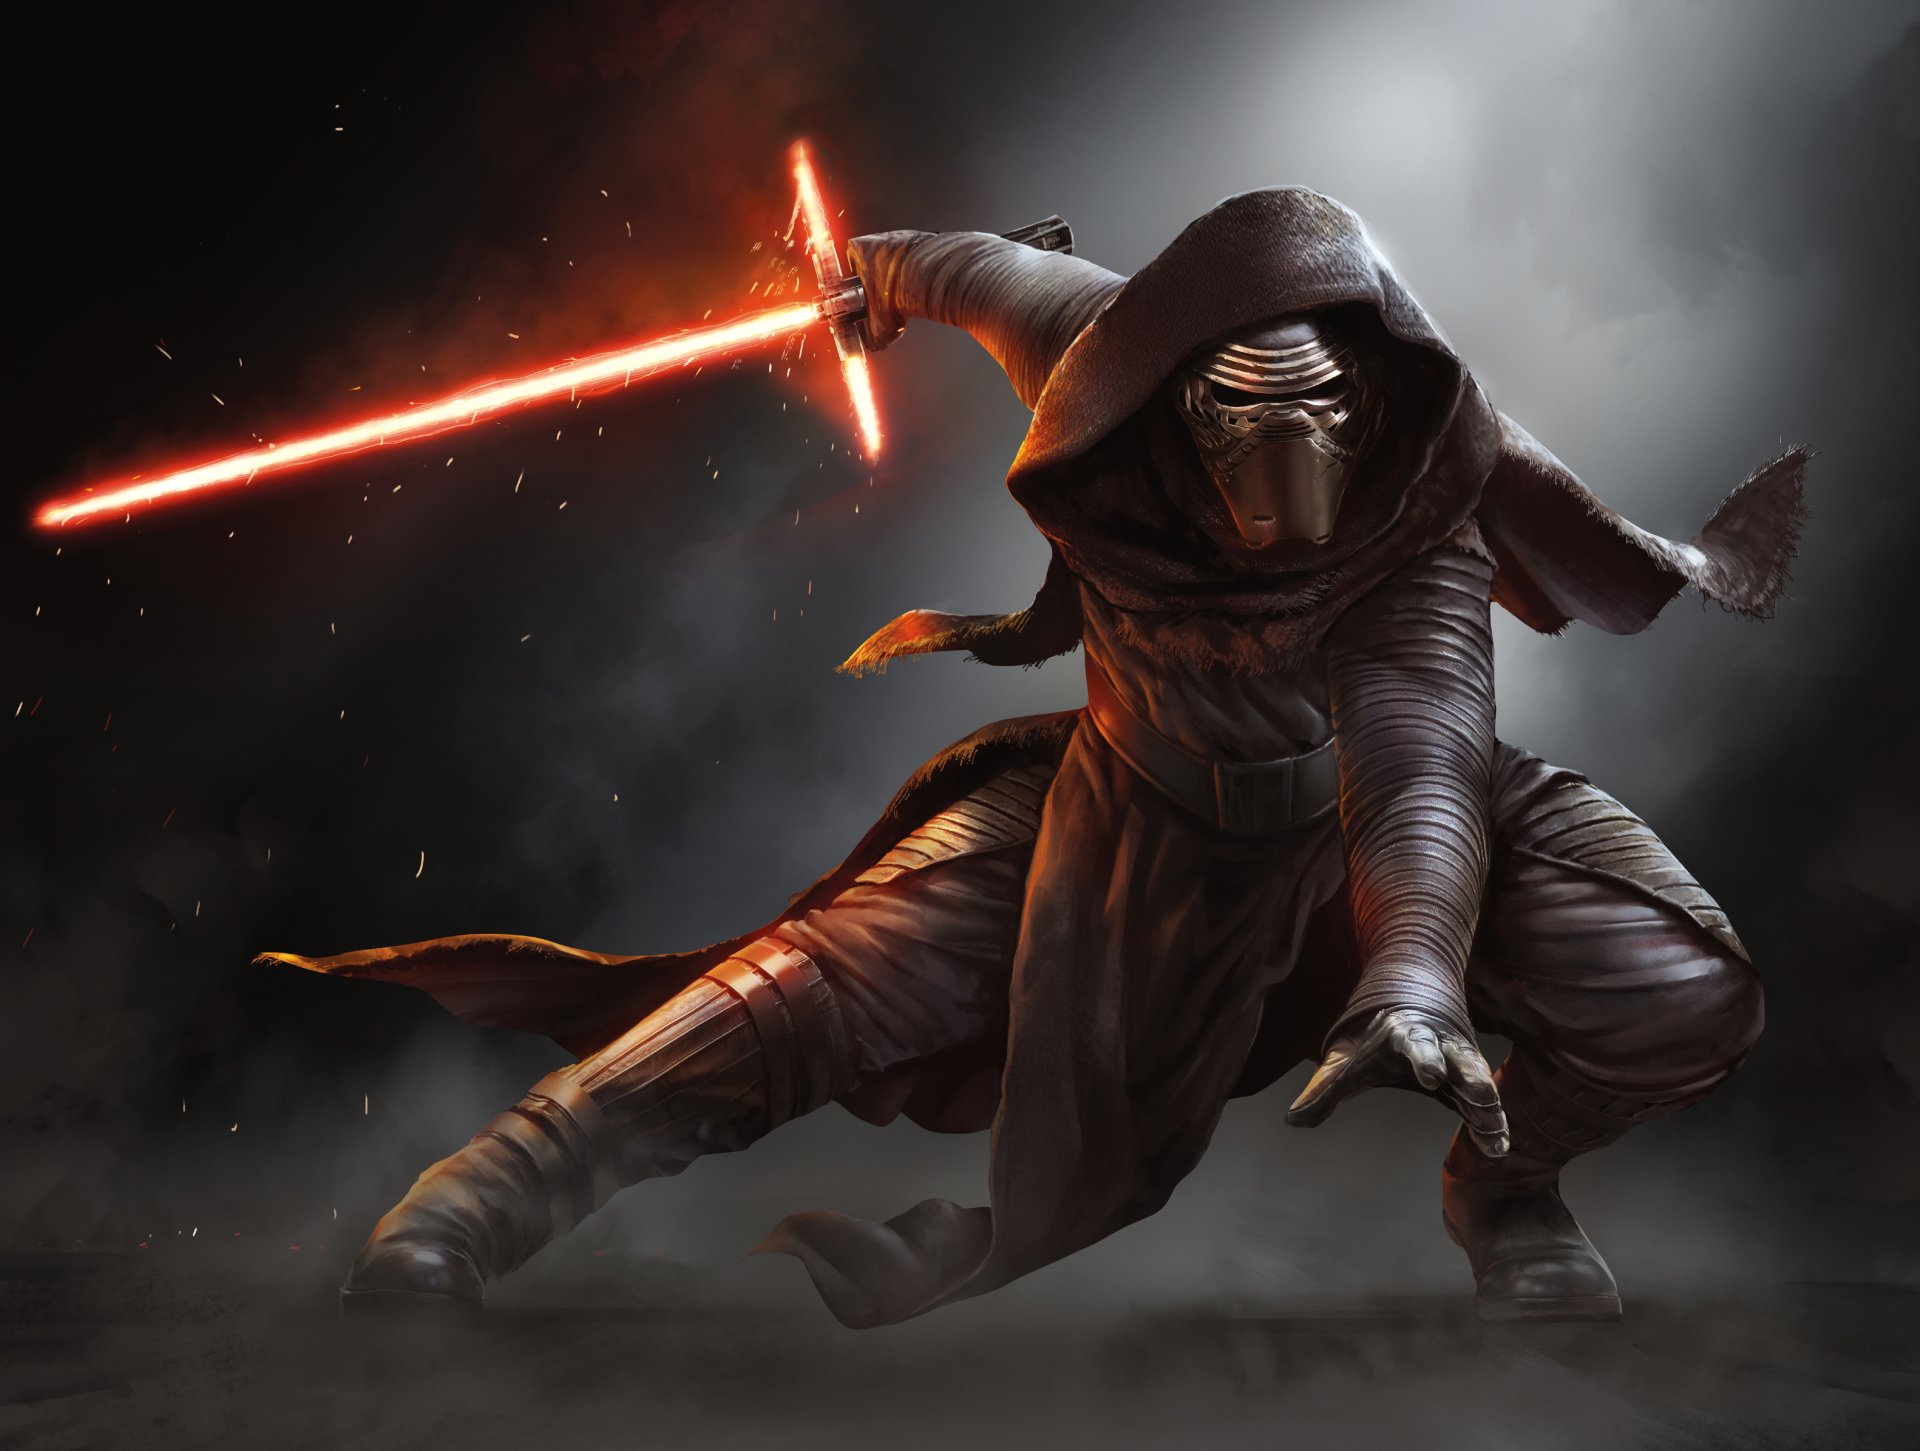 Epic Star Wars Wallpapers Posted By Samantha Cunningham